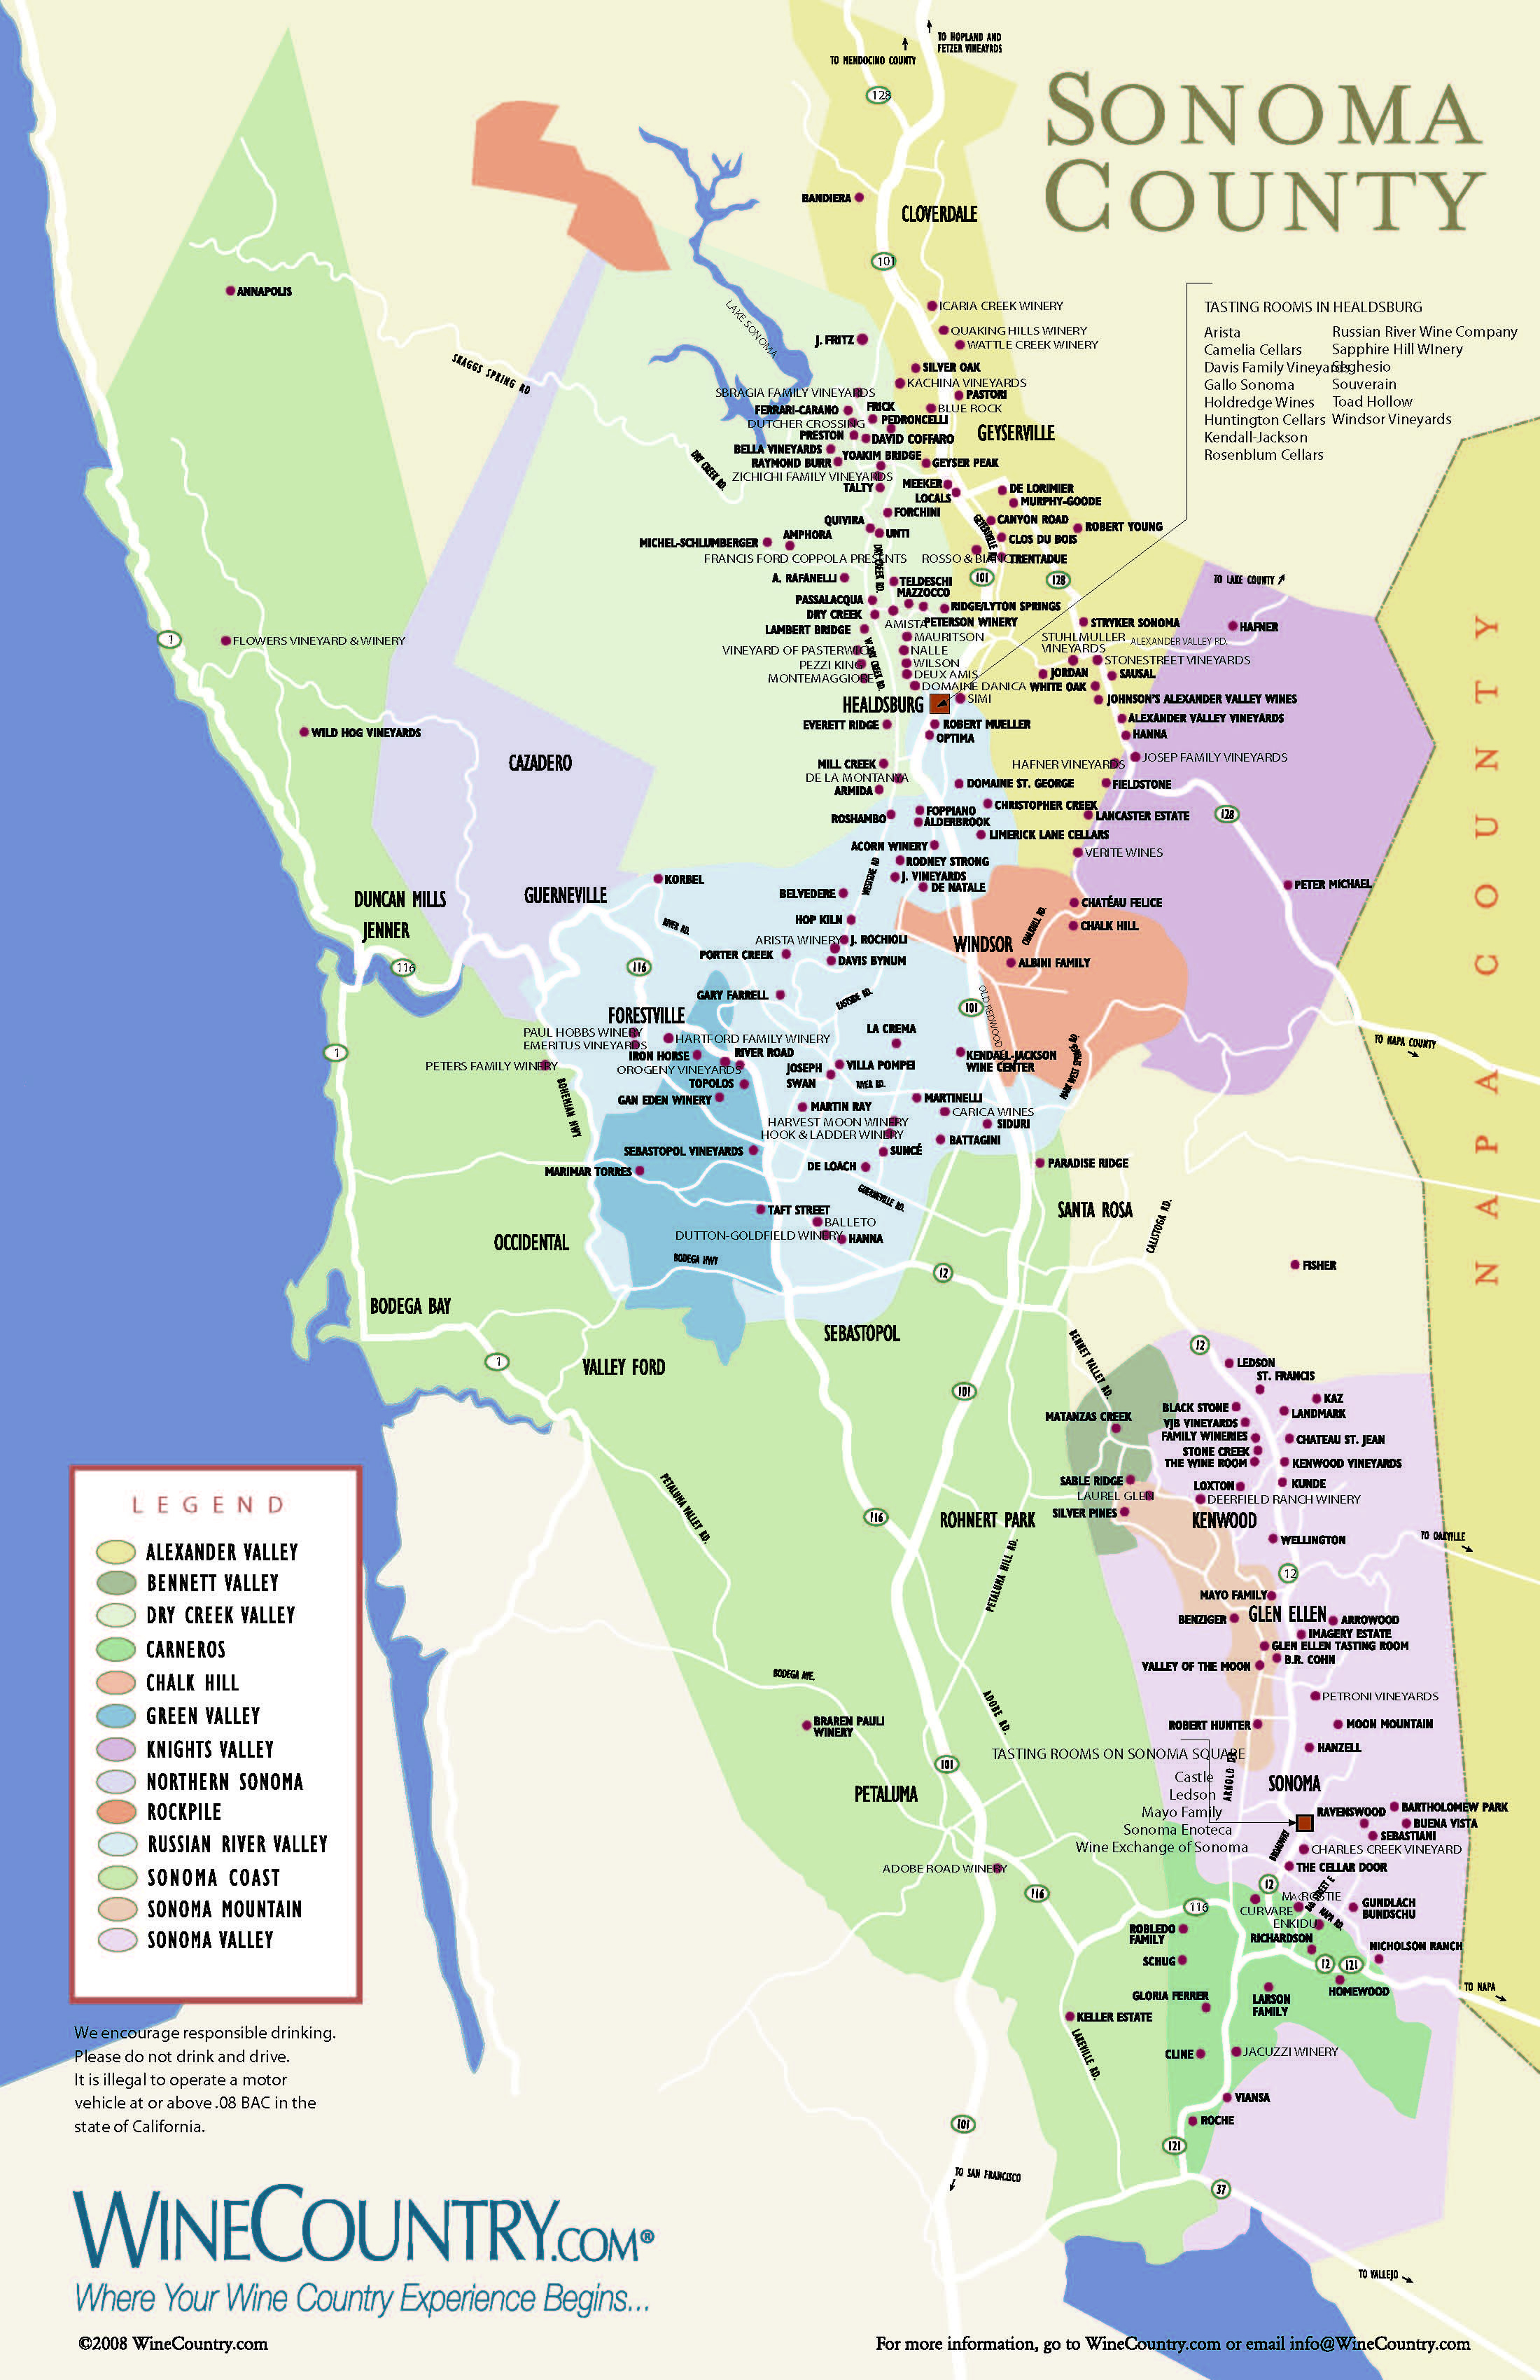 My Home <3 Favorite Place! Farm Fresh Food, Fantastic Wine And - Sonoma Wine Country Map California